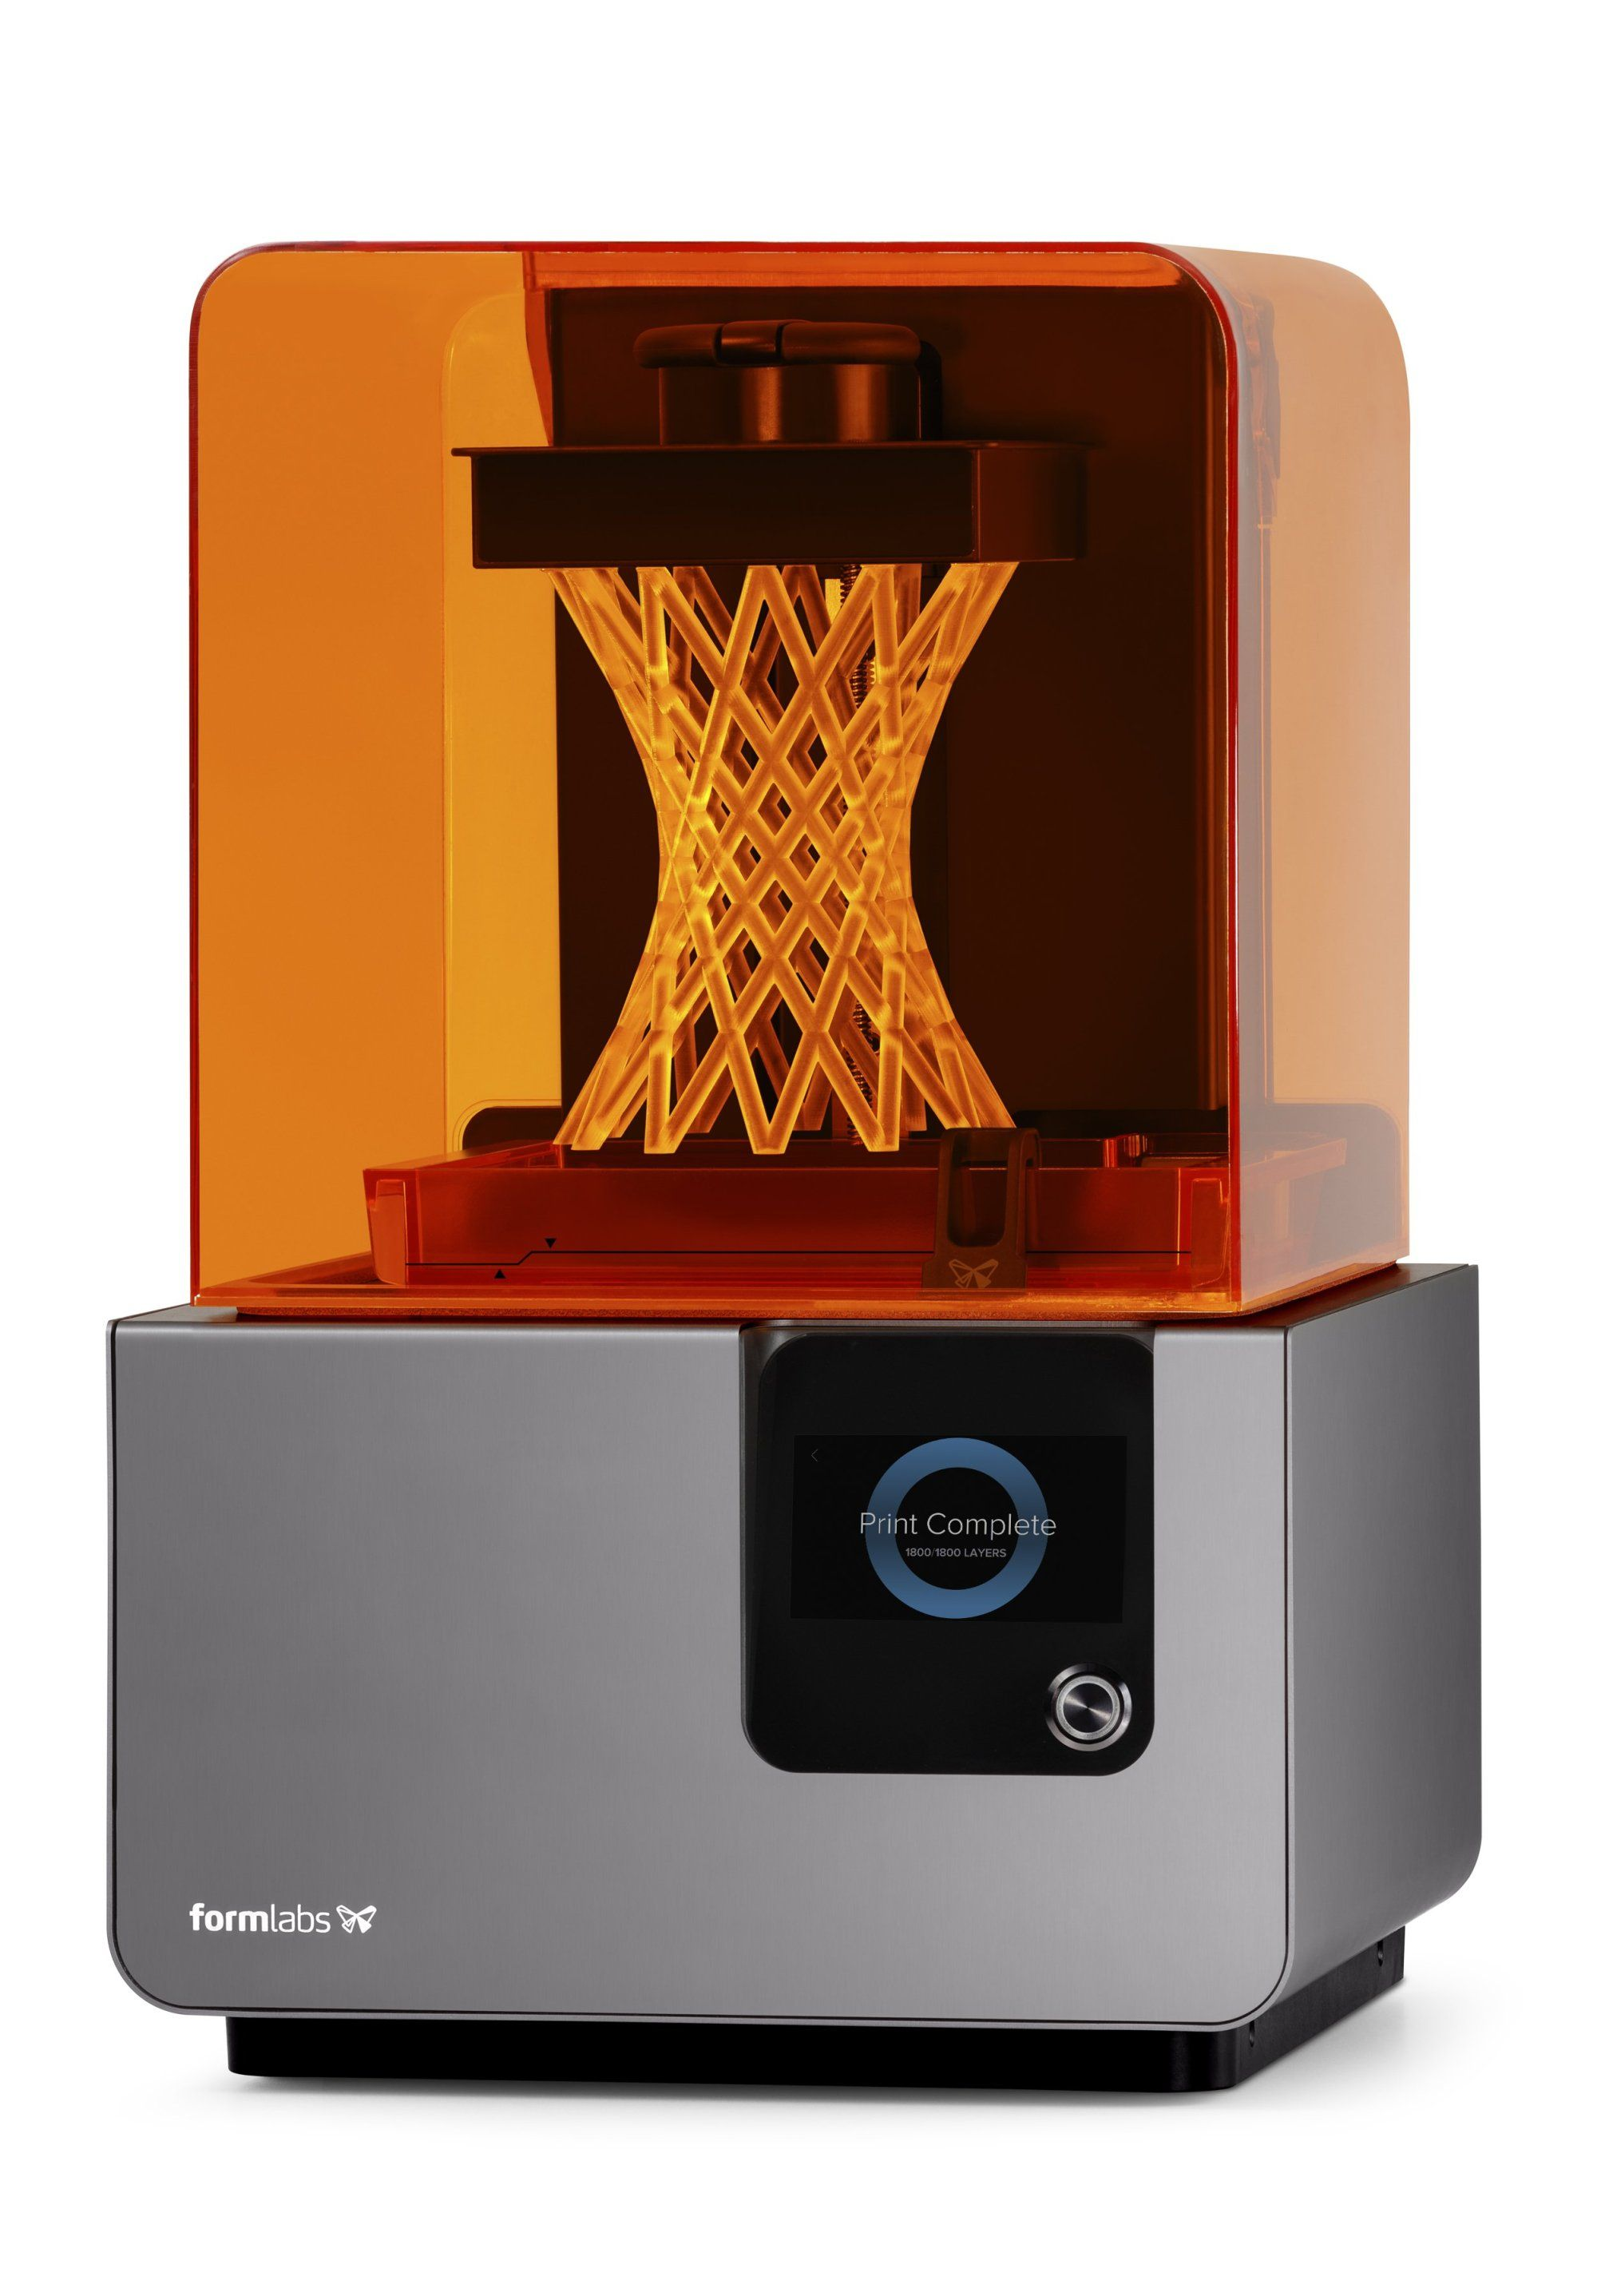 In this 3D printer buying guide, we'll take a look at the